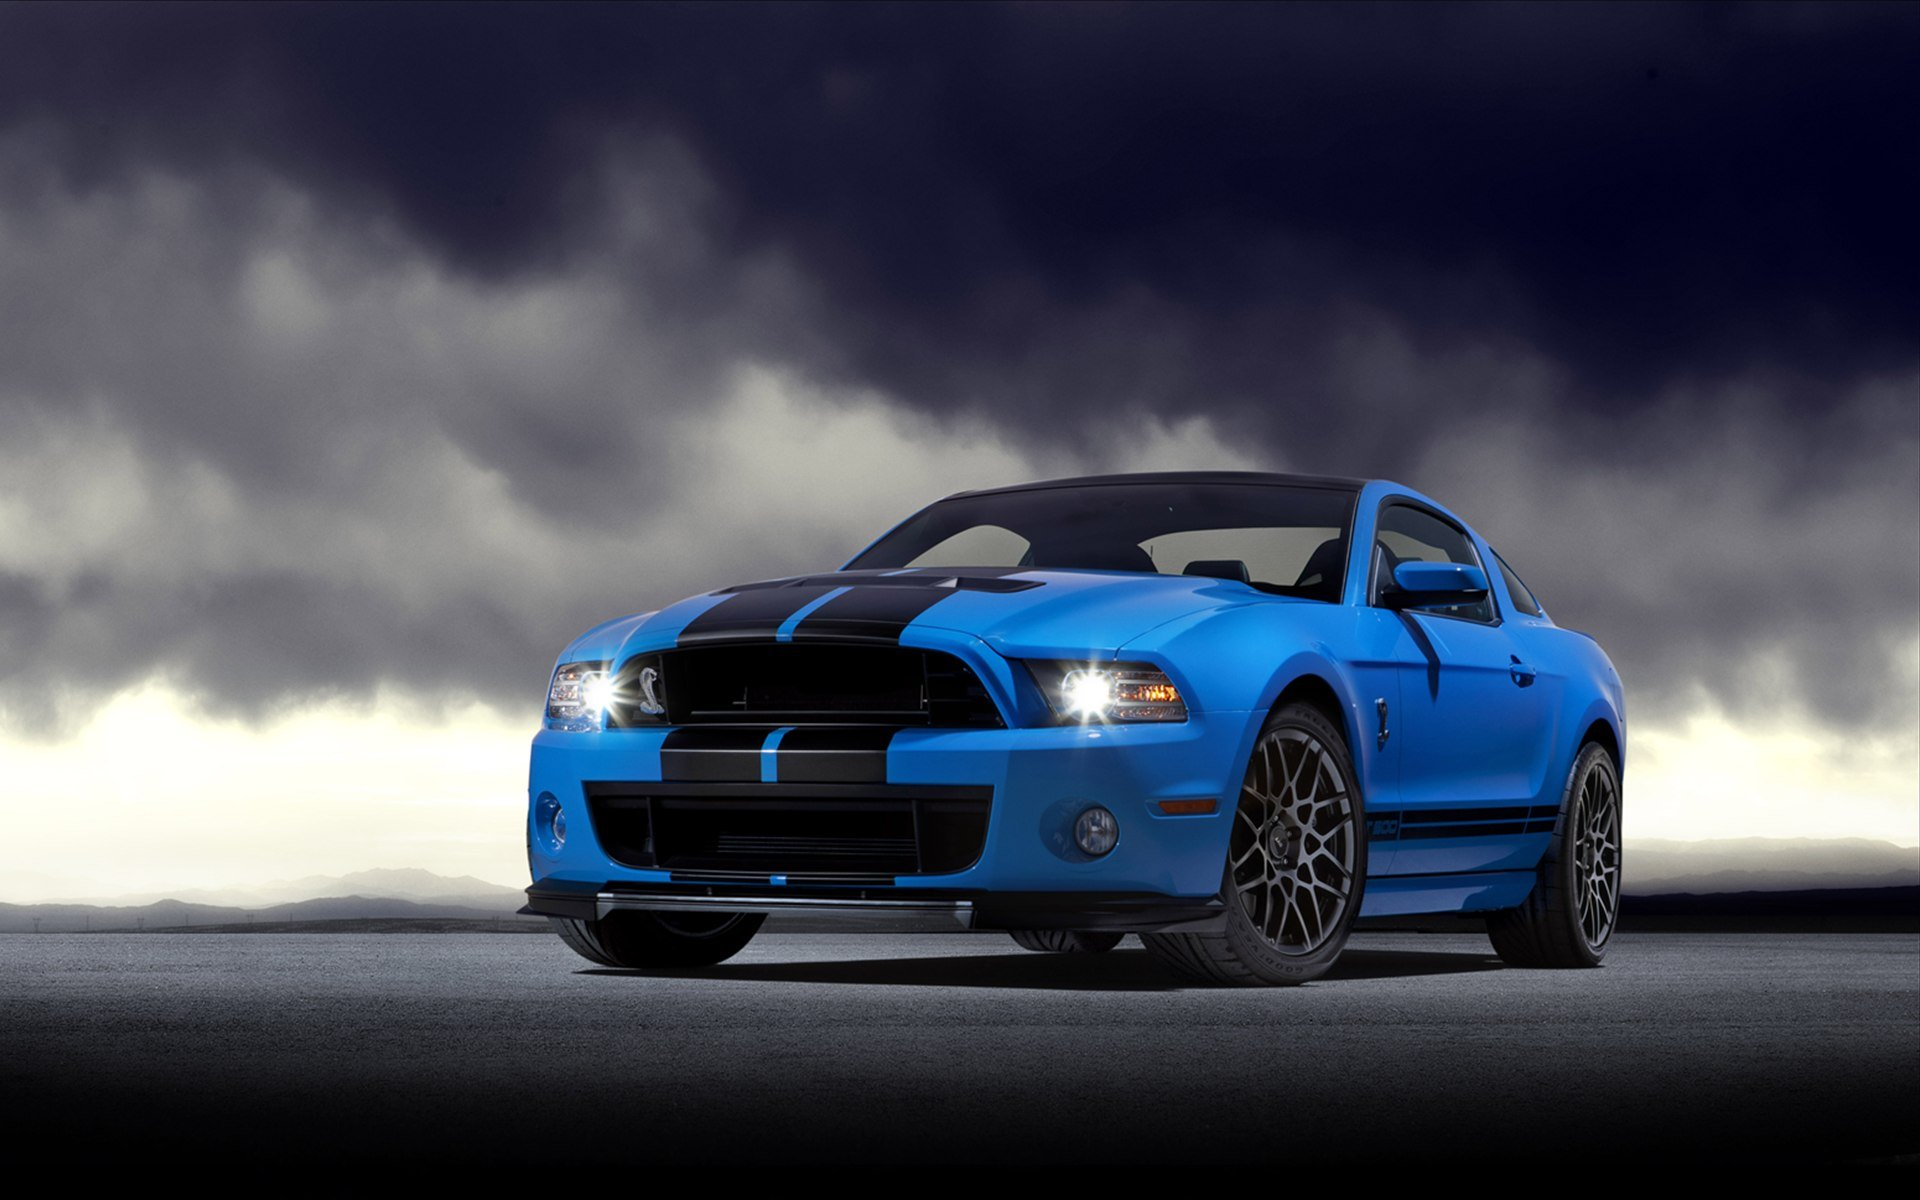 2013 Ford Shelby GT500 Wallpaper HD Car Wallpapers 1920x1200